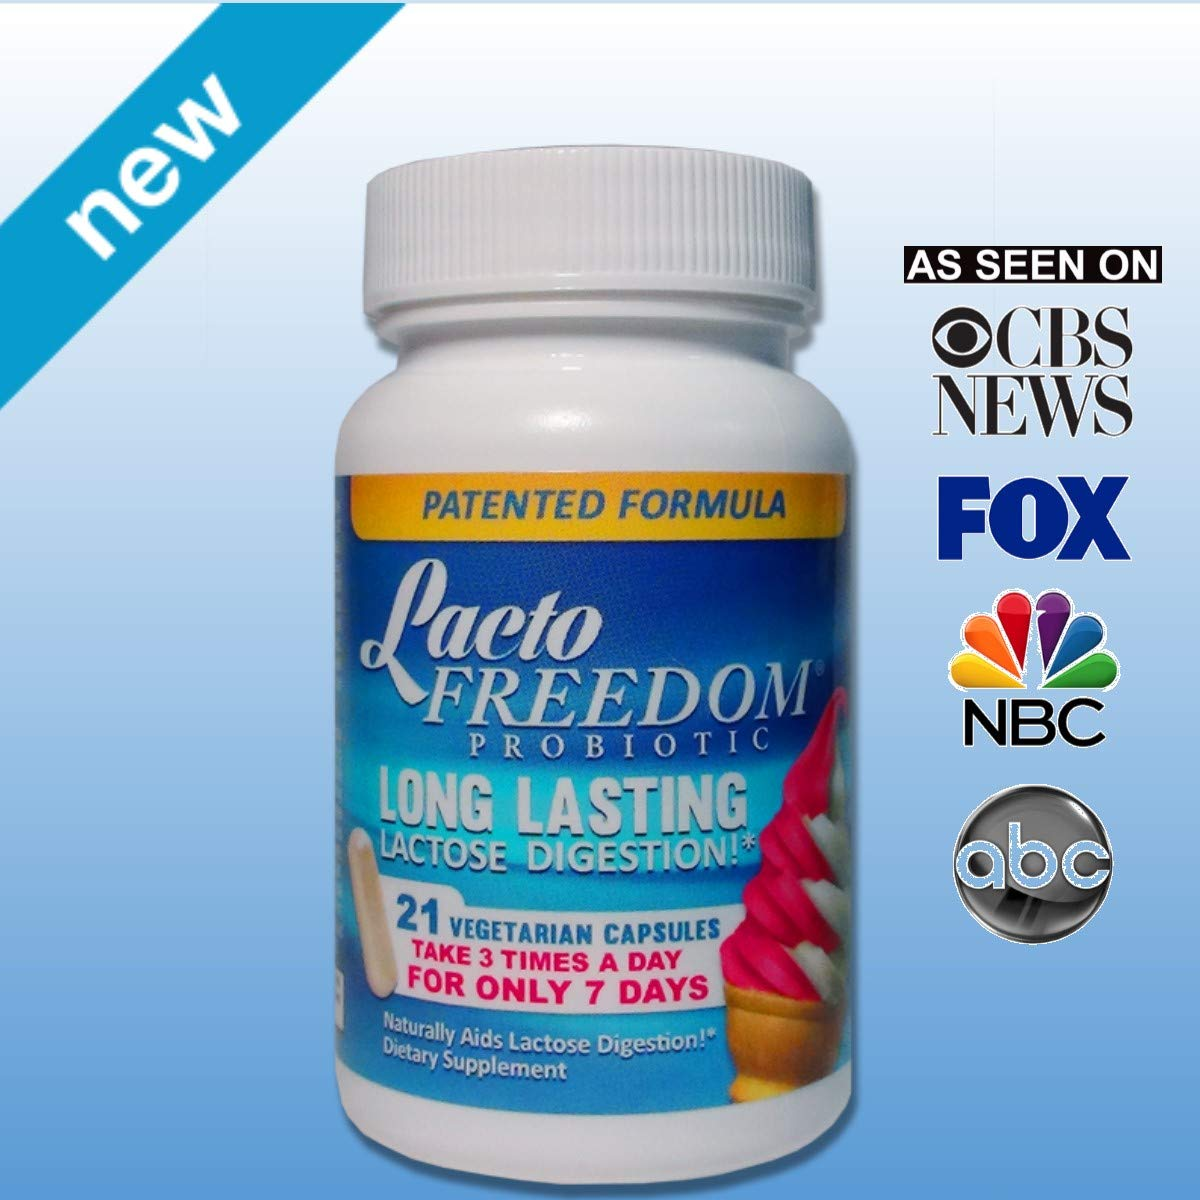 Lacto-Freedom Lactose Intolerance Pills- Patented Lactase Enzyme Supplement - Provides Long Term Relief from Cramps, Gas, Bloating & Diarrhea Guaranteed - 7 Days Dosing Allows Healthy Dairy Digest by Lacto-Freedom